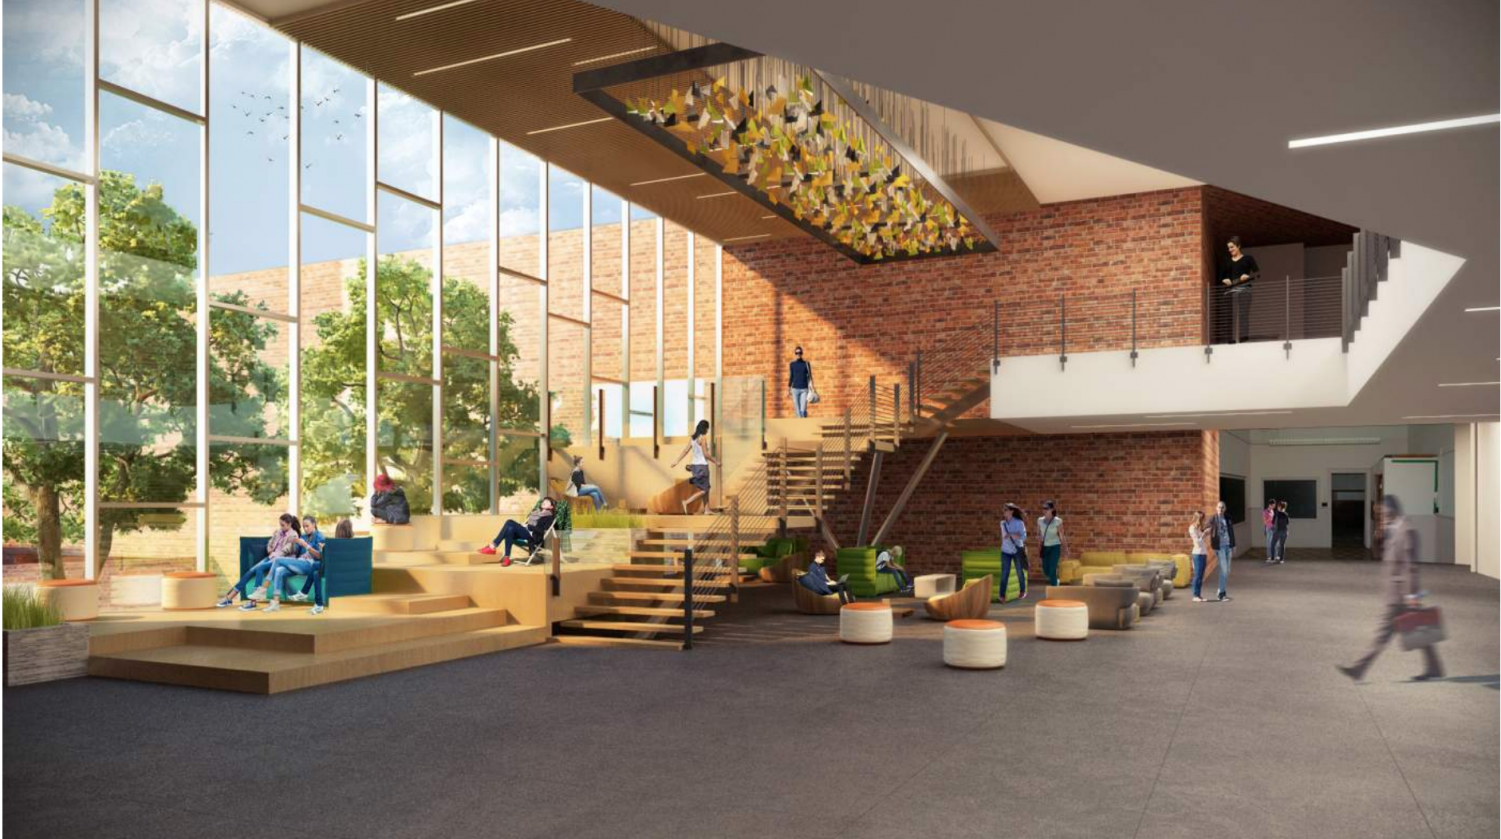 A digital rendering illustrates what the common area will look like when Whitman's renovation is completed in 2021. The completed addition will include a three-story building to replace Whittier Woods, an auxiliary gymnasium and a common area to link the main building to the new wing.